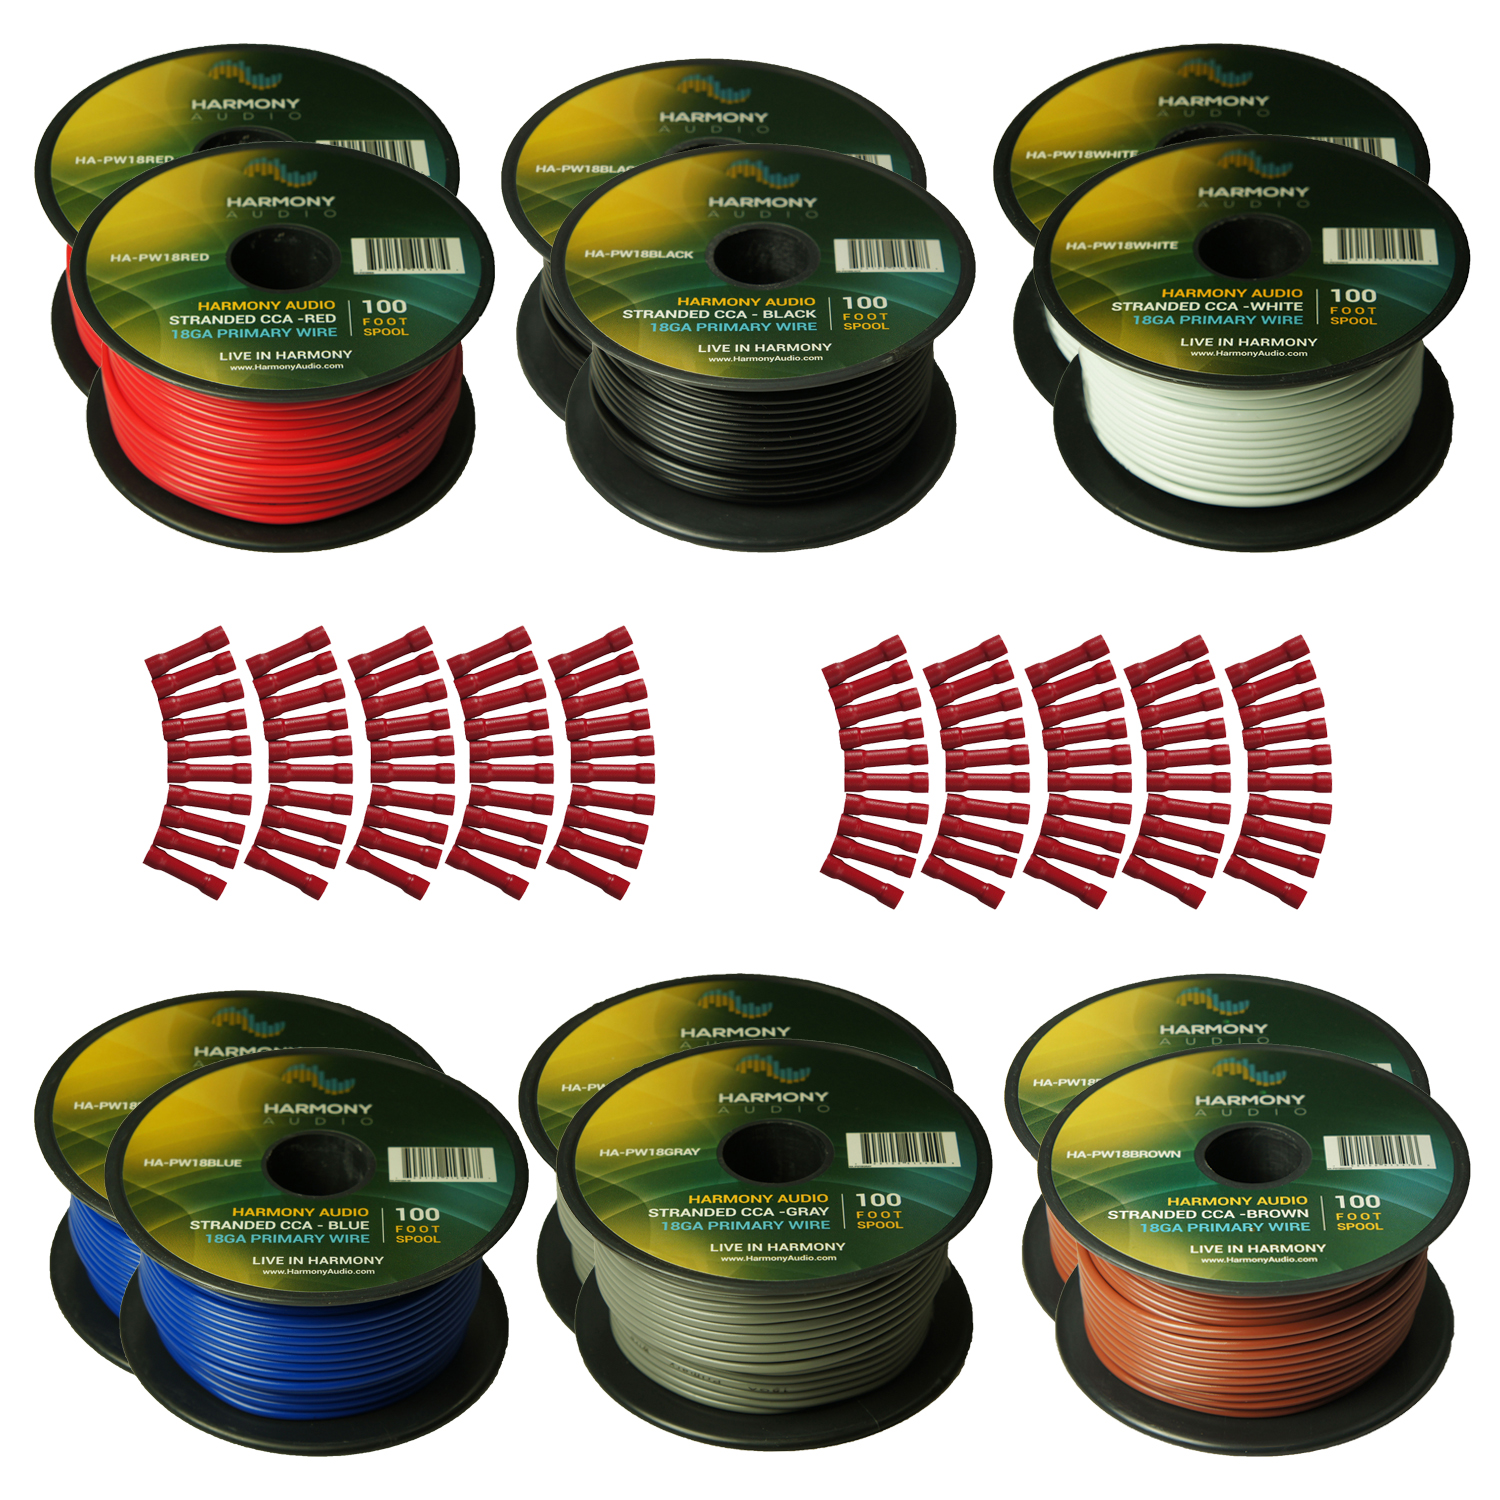 Harmony Audio Primary Single Conductor 18 Gauge Power or Ground Wire - 12 Rolls - 1200 Feet - 6 Color Mix for Car Audio / Trailer / Model Train / Remote